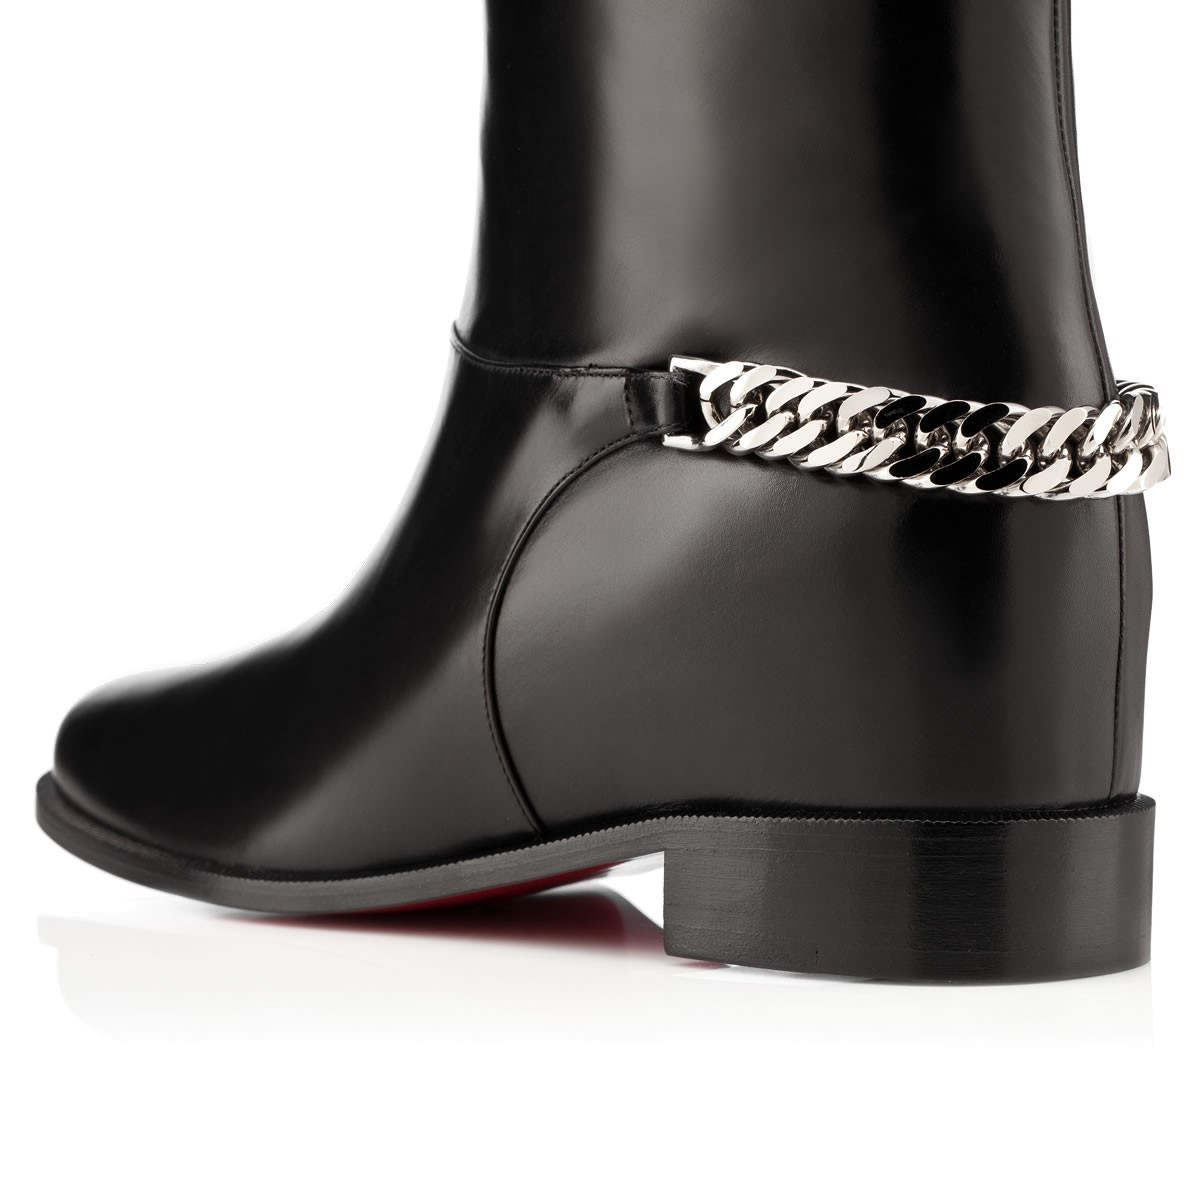 17AW☆Christian Louboutin☆Cate Boot